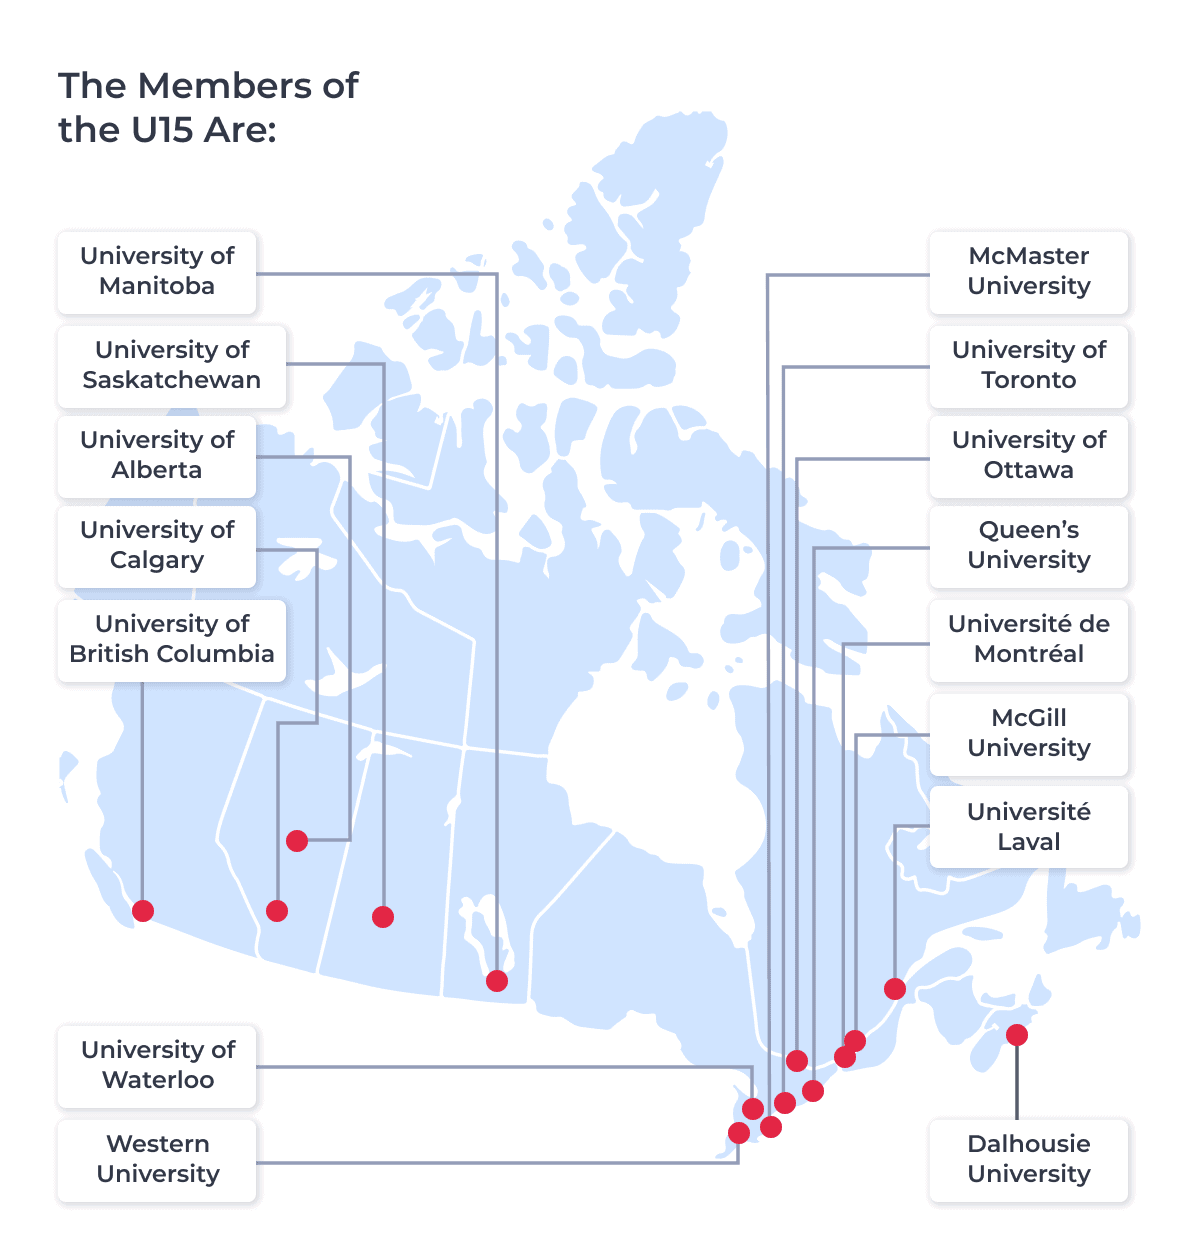 Map of Canada featuring pin locations of all U15 universities